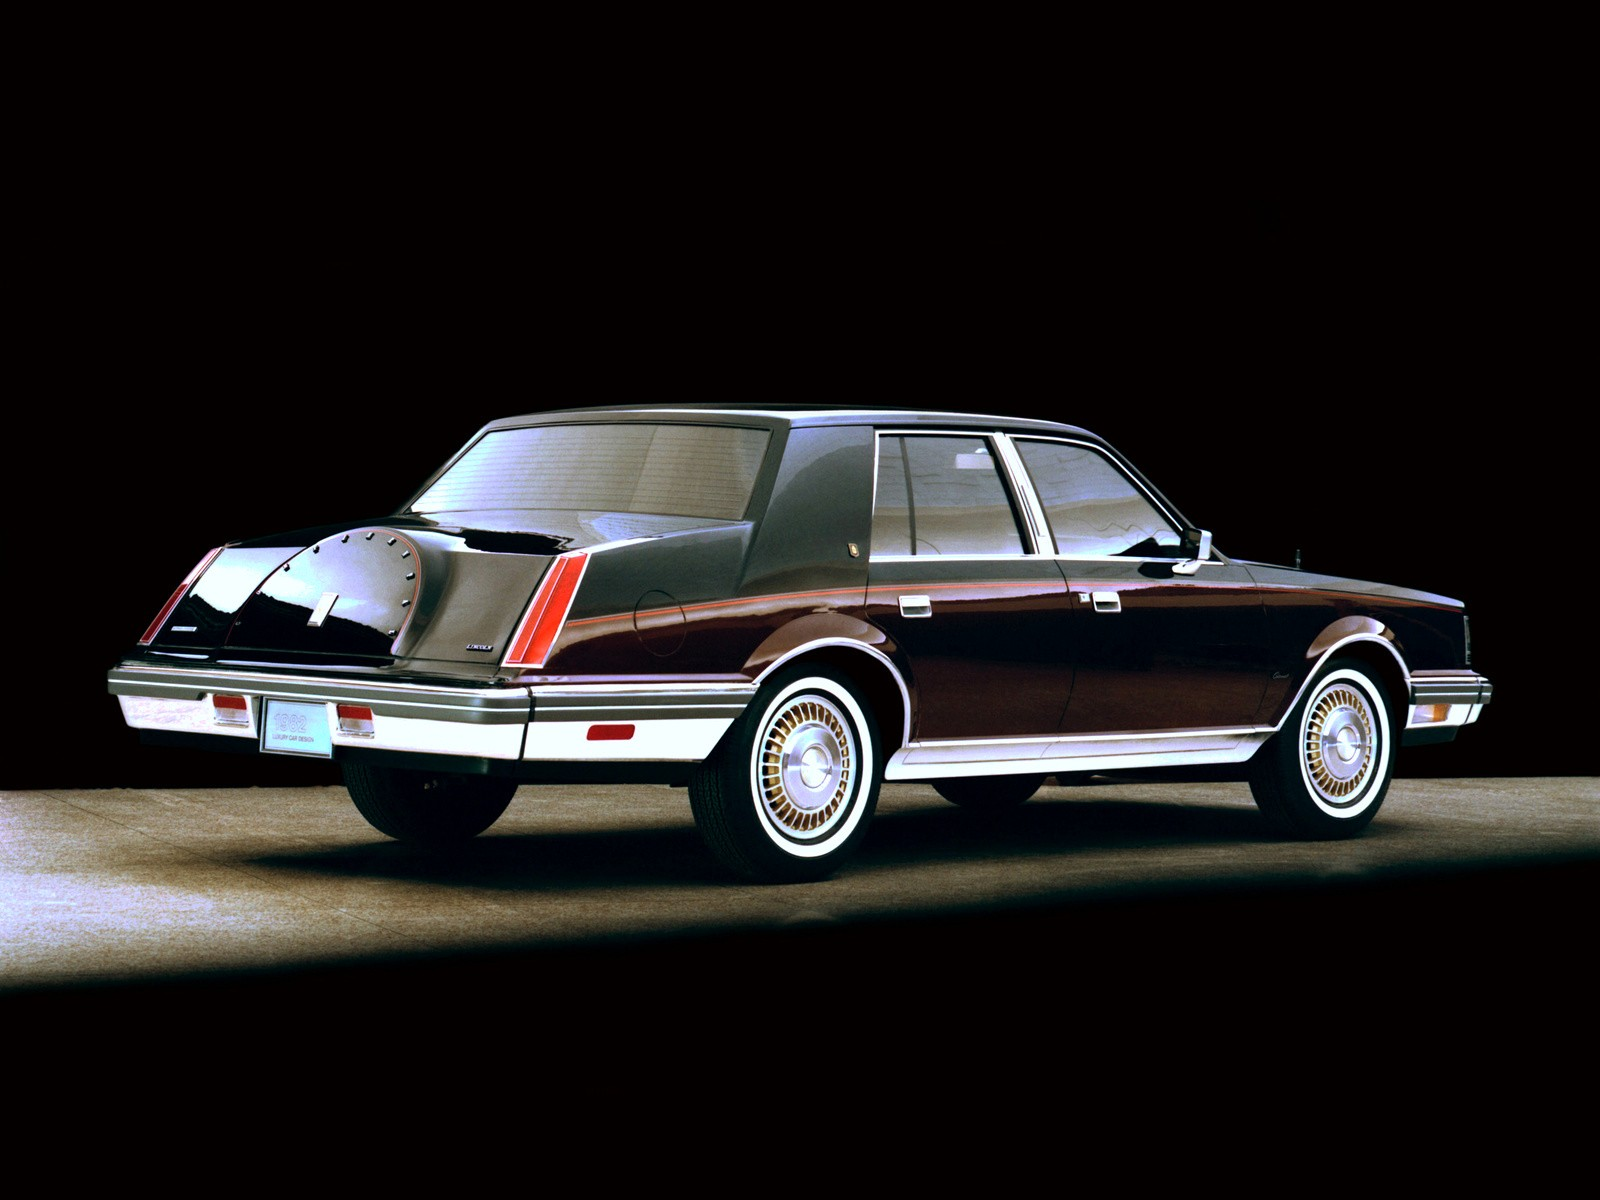 Fa A E Big as well Maxresdefault additionally Ford Falcon Pic X moreover I likewise Lincoln Zephyr. on 2007 ford zephyr